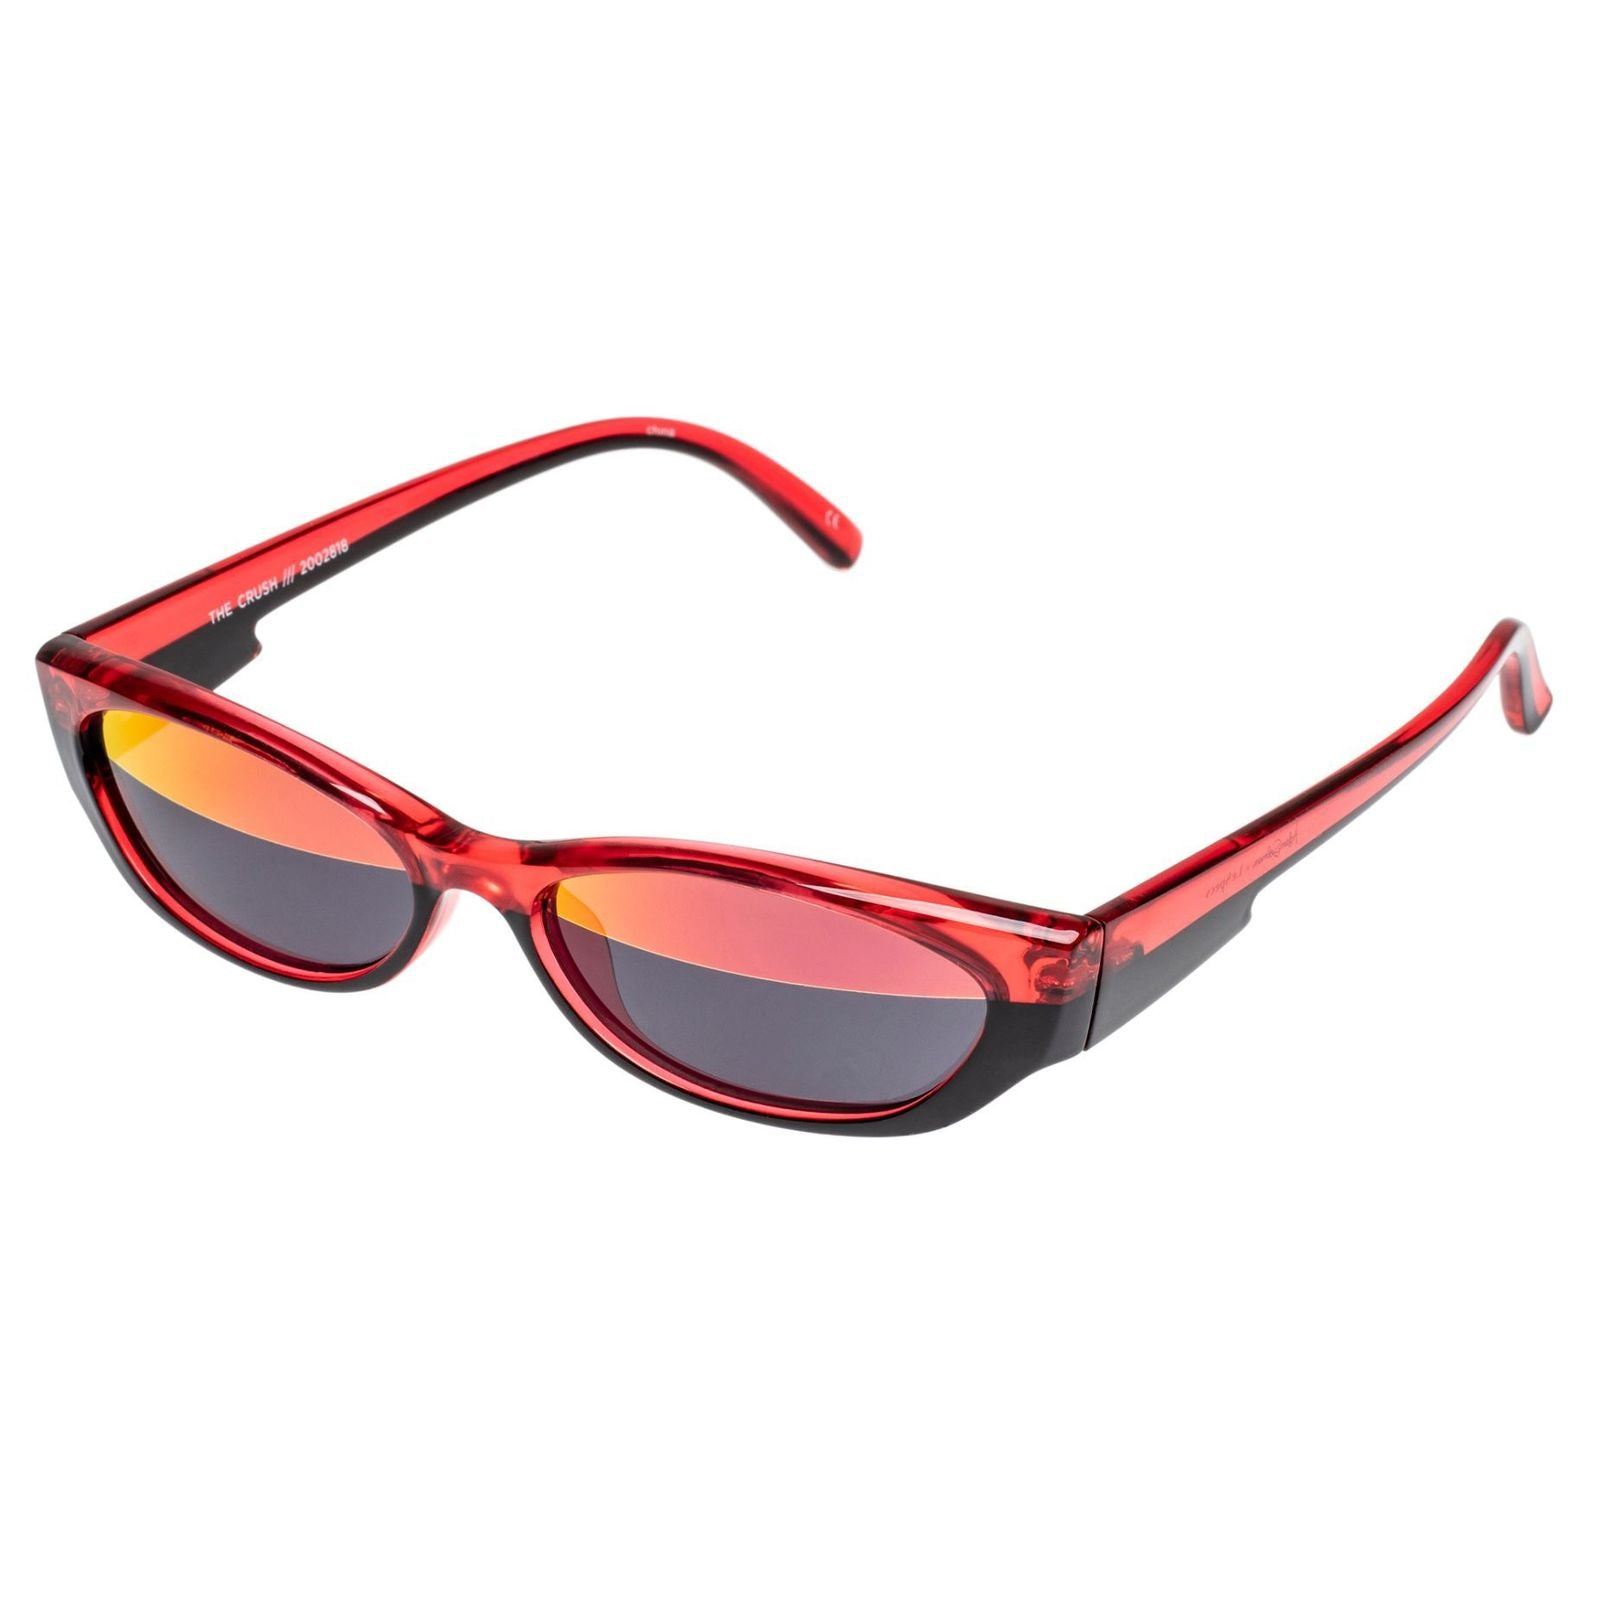 ADAM SELMAN X LE SPECS  / THE CRUSH / RED BLACK SPICE